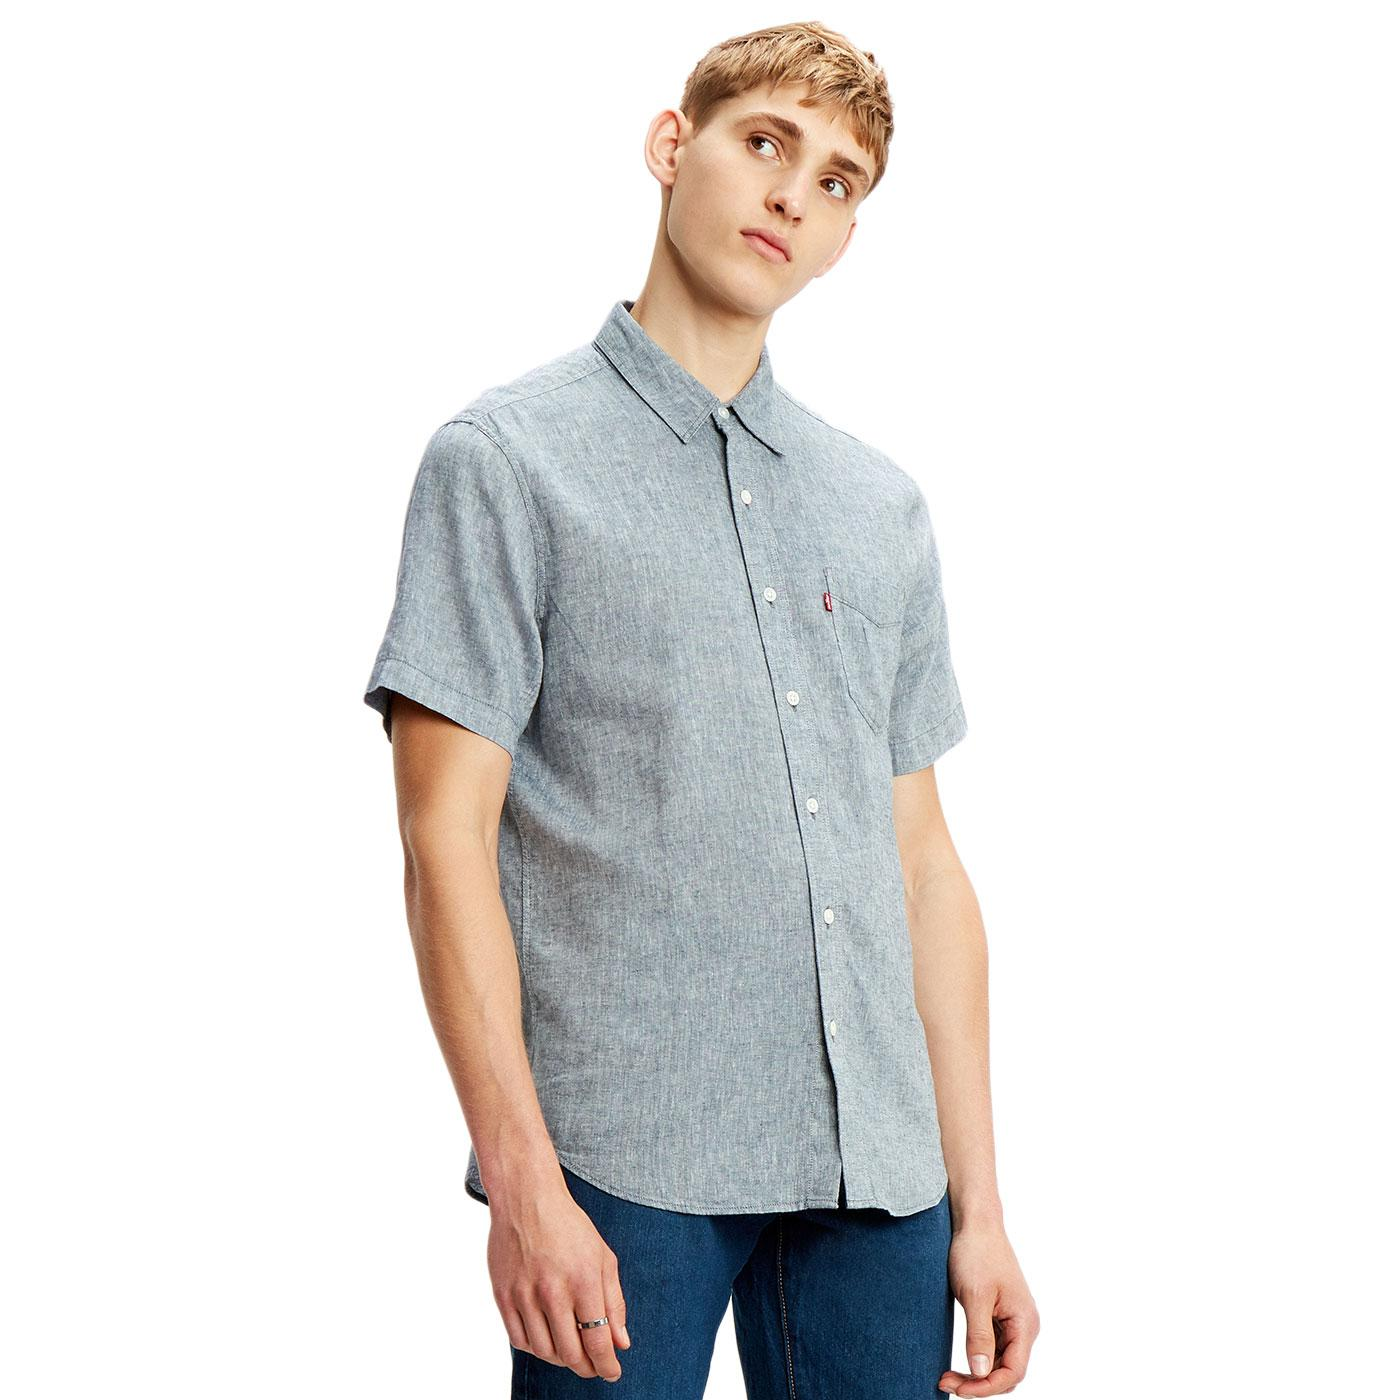 LEVI'S Retro Mod S/S Sunset 1 Pocket Linen Shirt